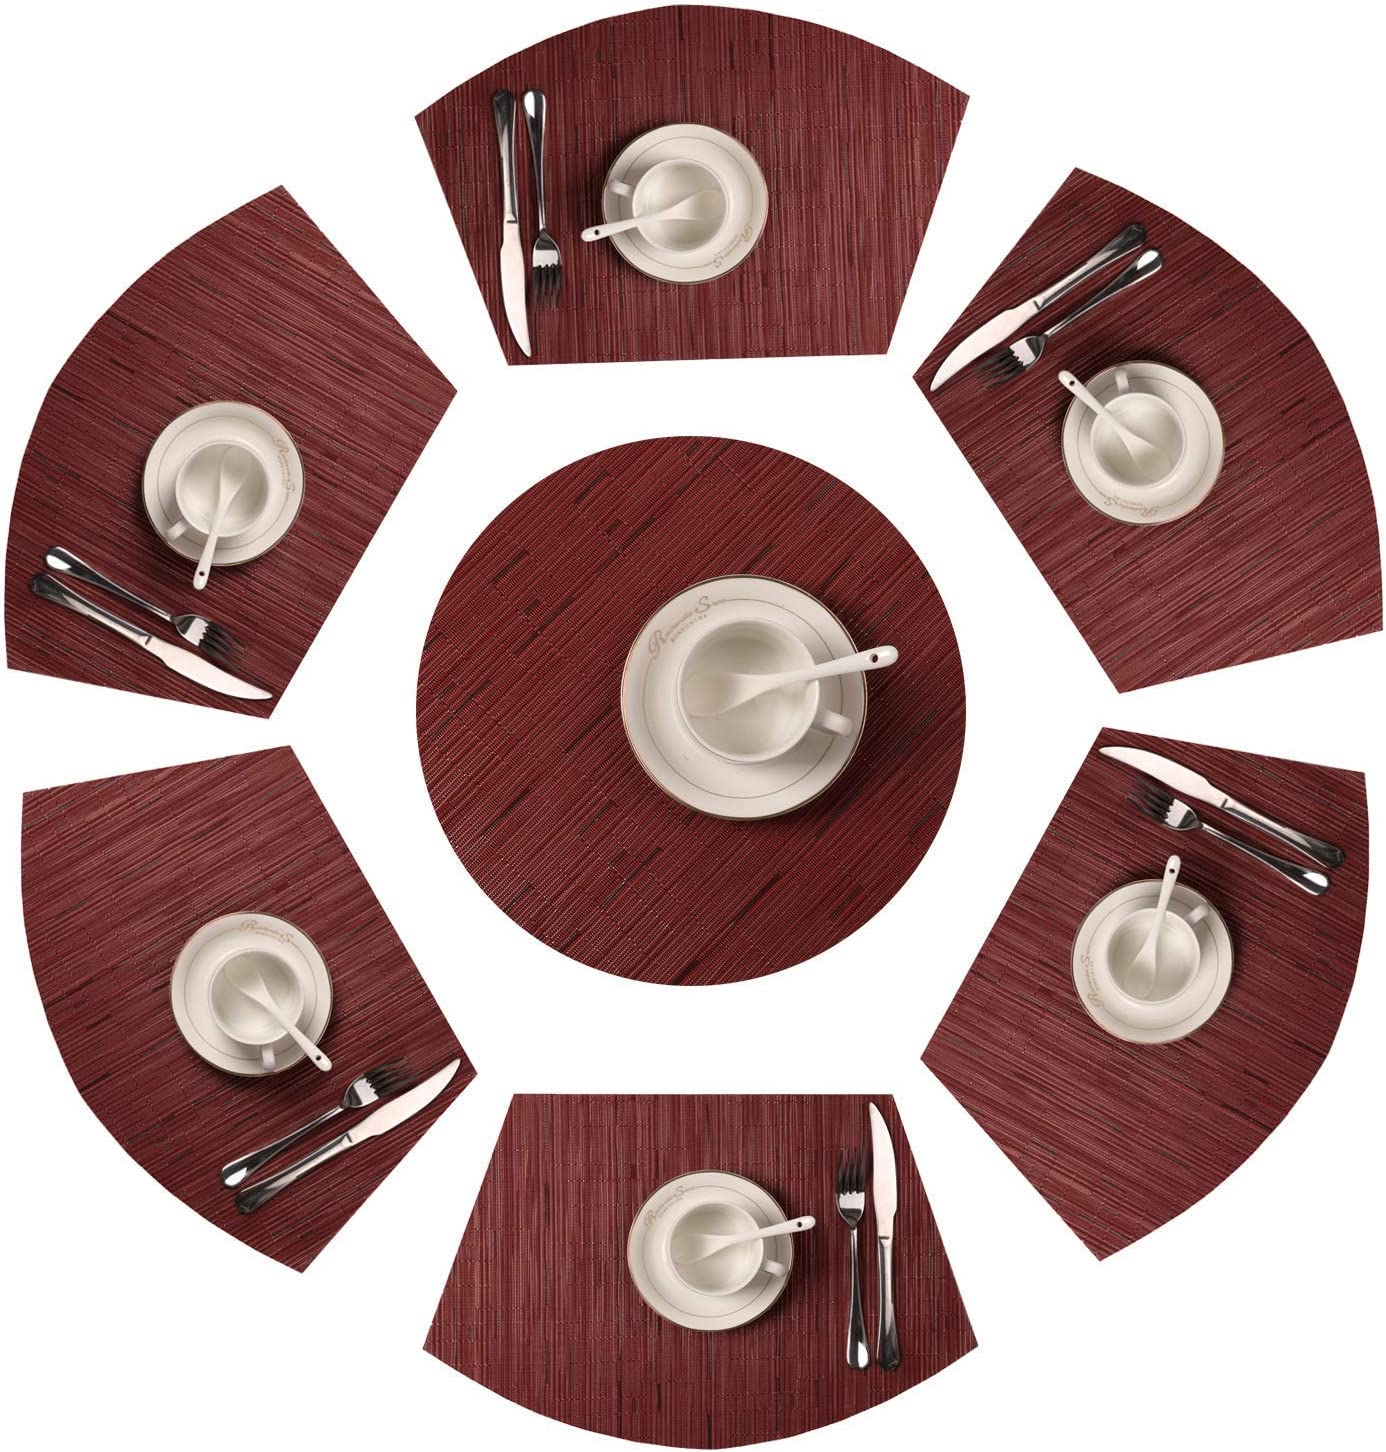 D C FIX Table Mats Weaved Placemats Dining Room Table Plate Decor DISCOUNTED